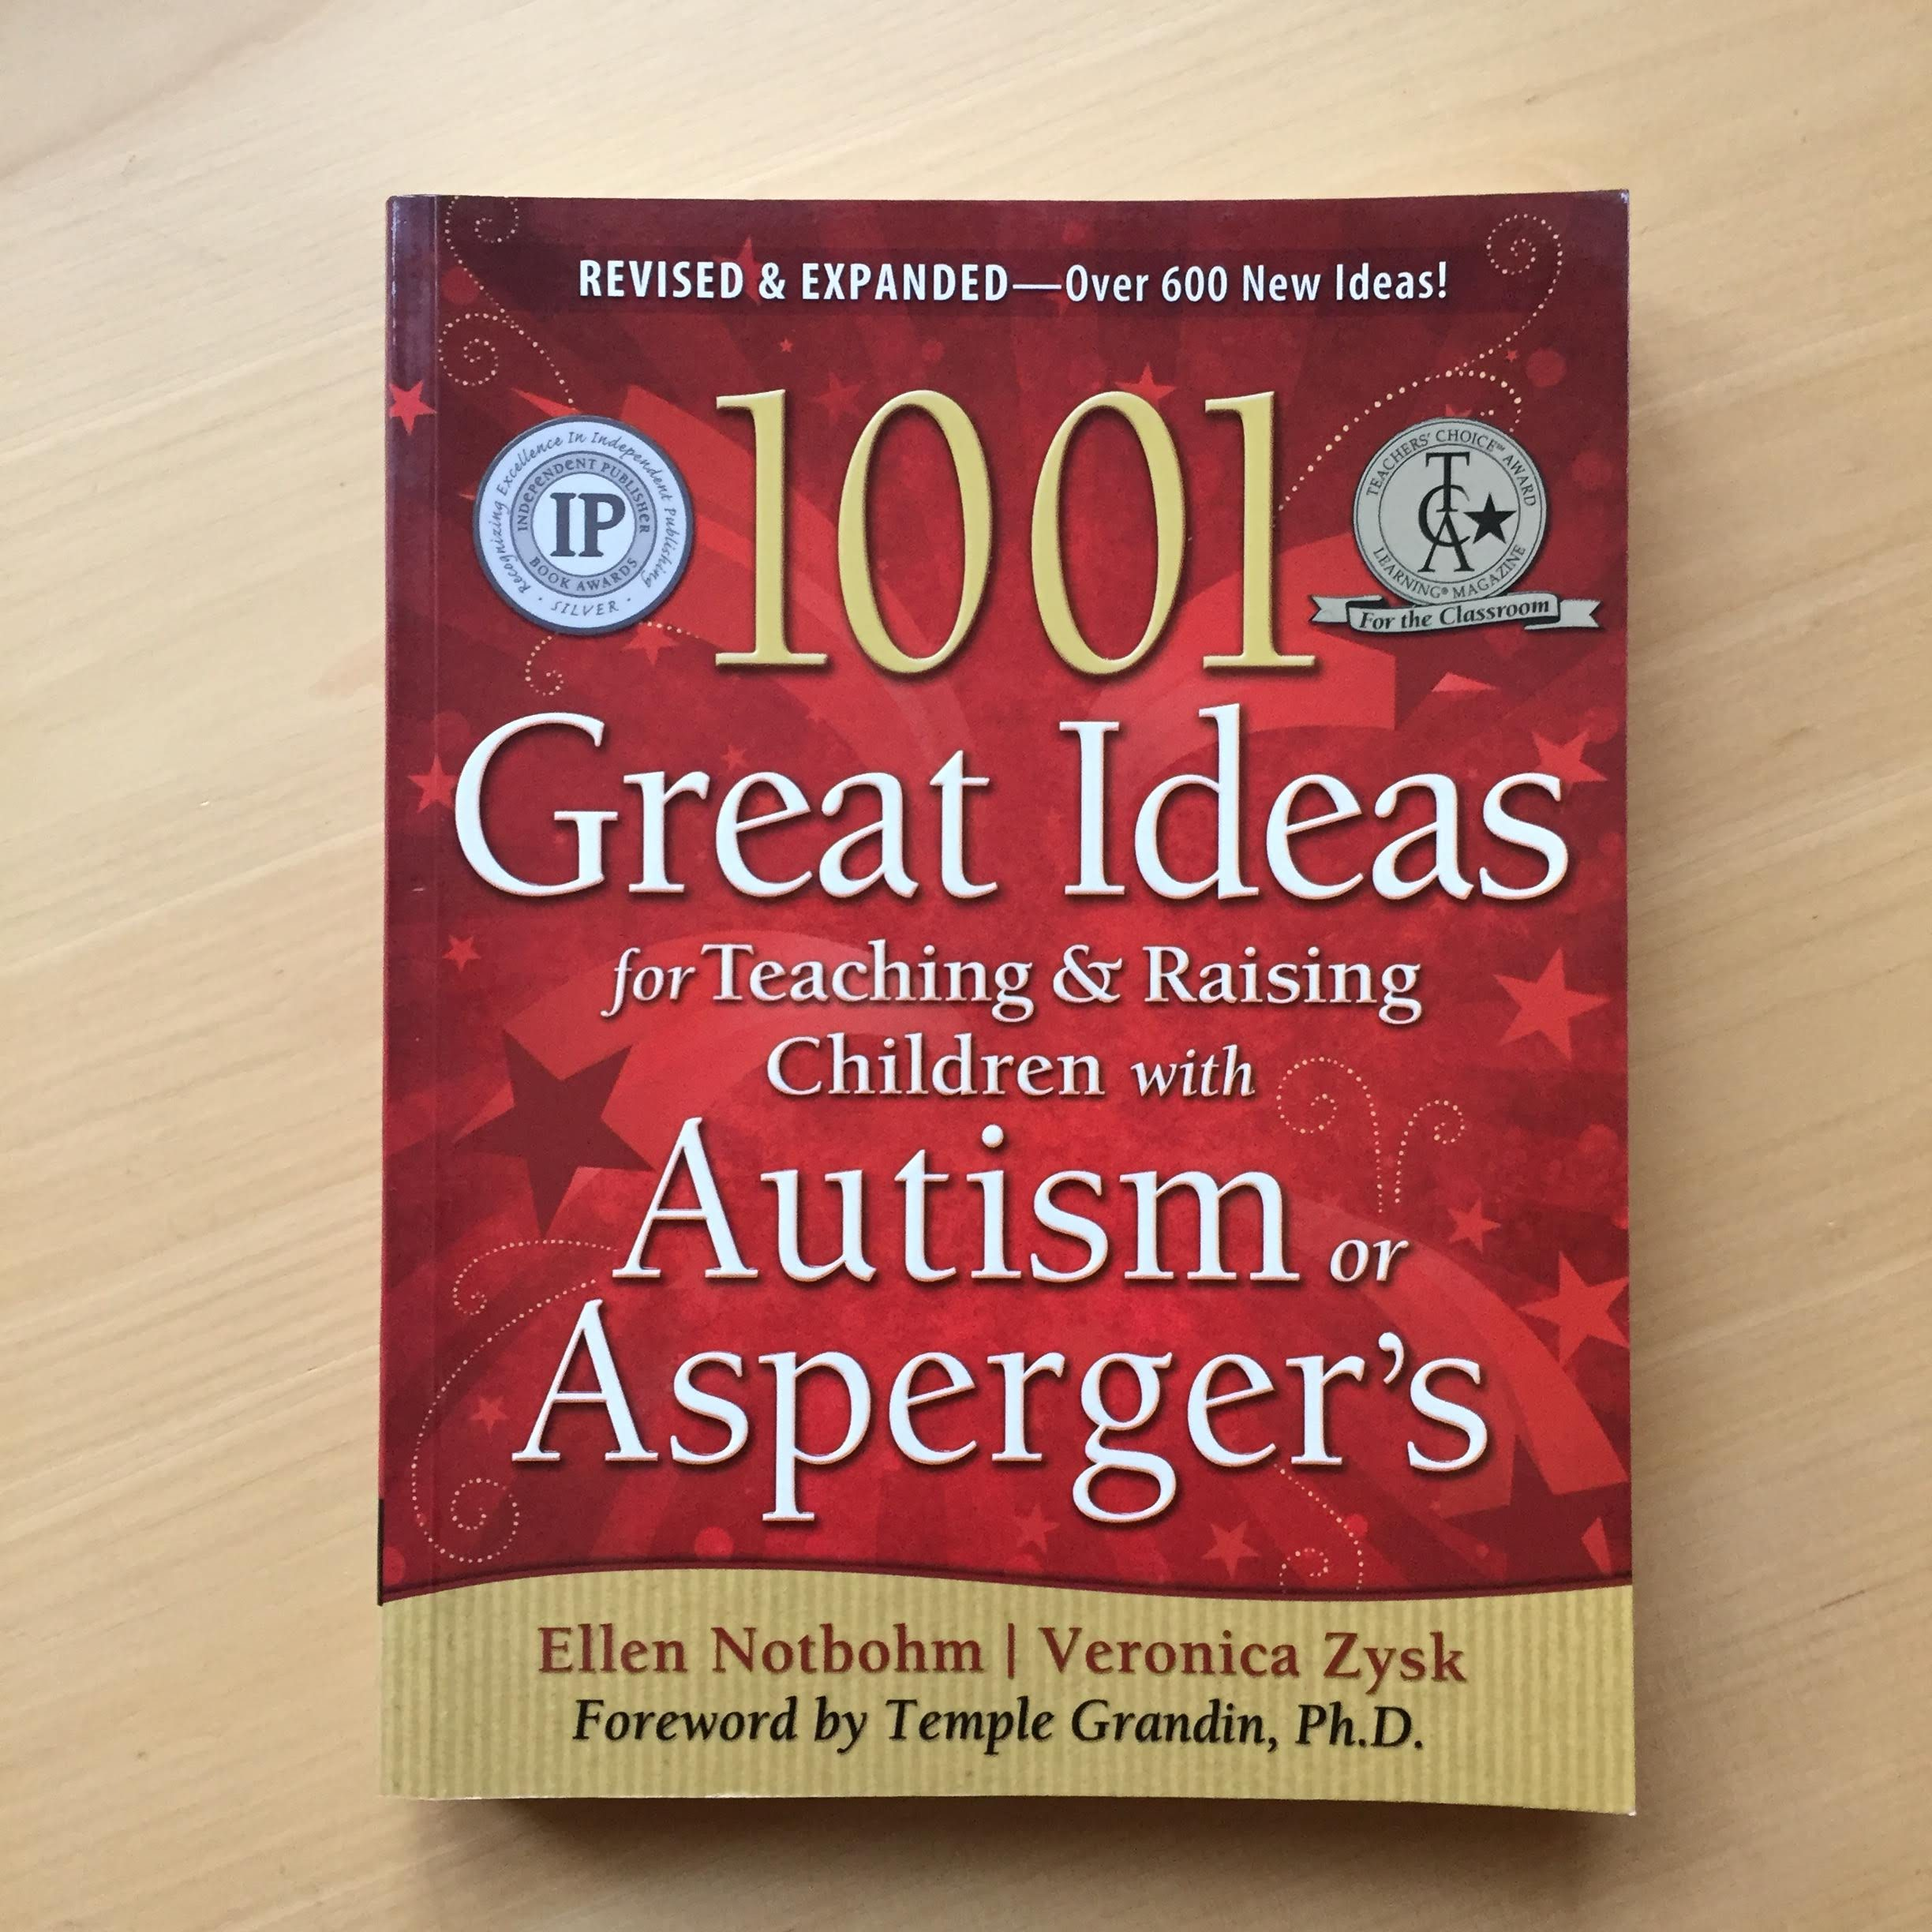 1001 great ideas for teaching and raising children with autism og Asperger's af E. Notbohm og V. Zysk 50 kr.